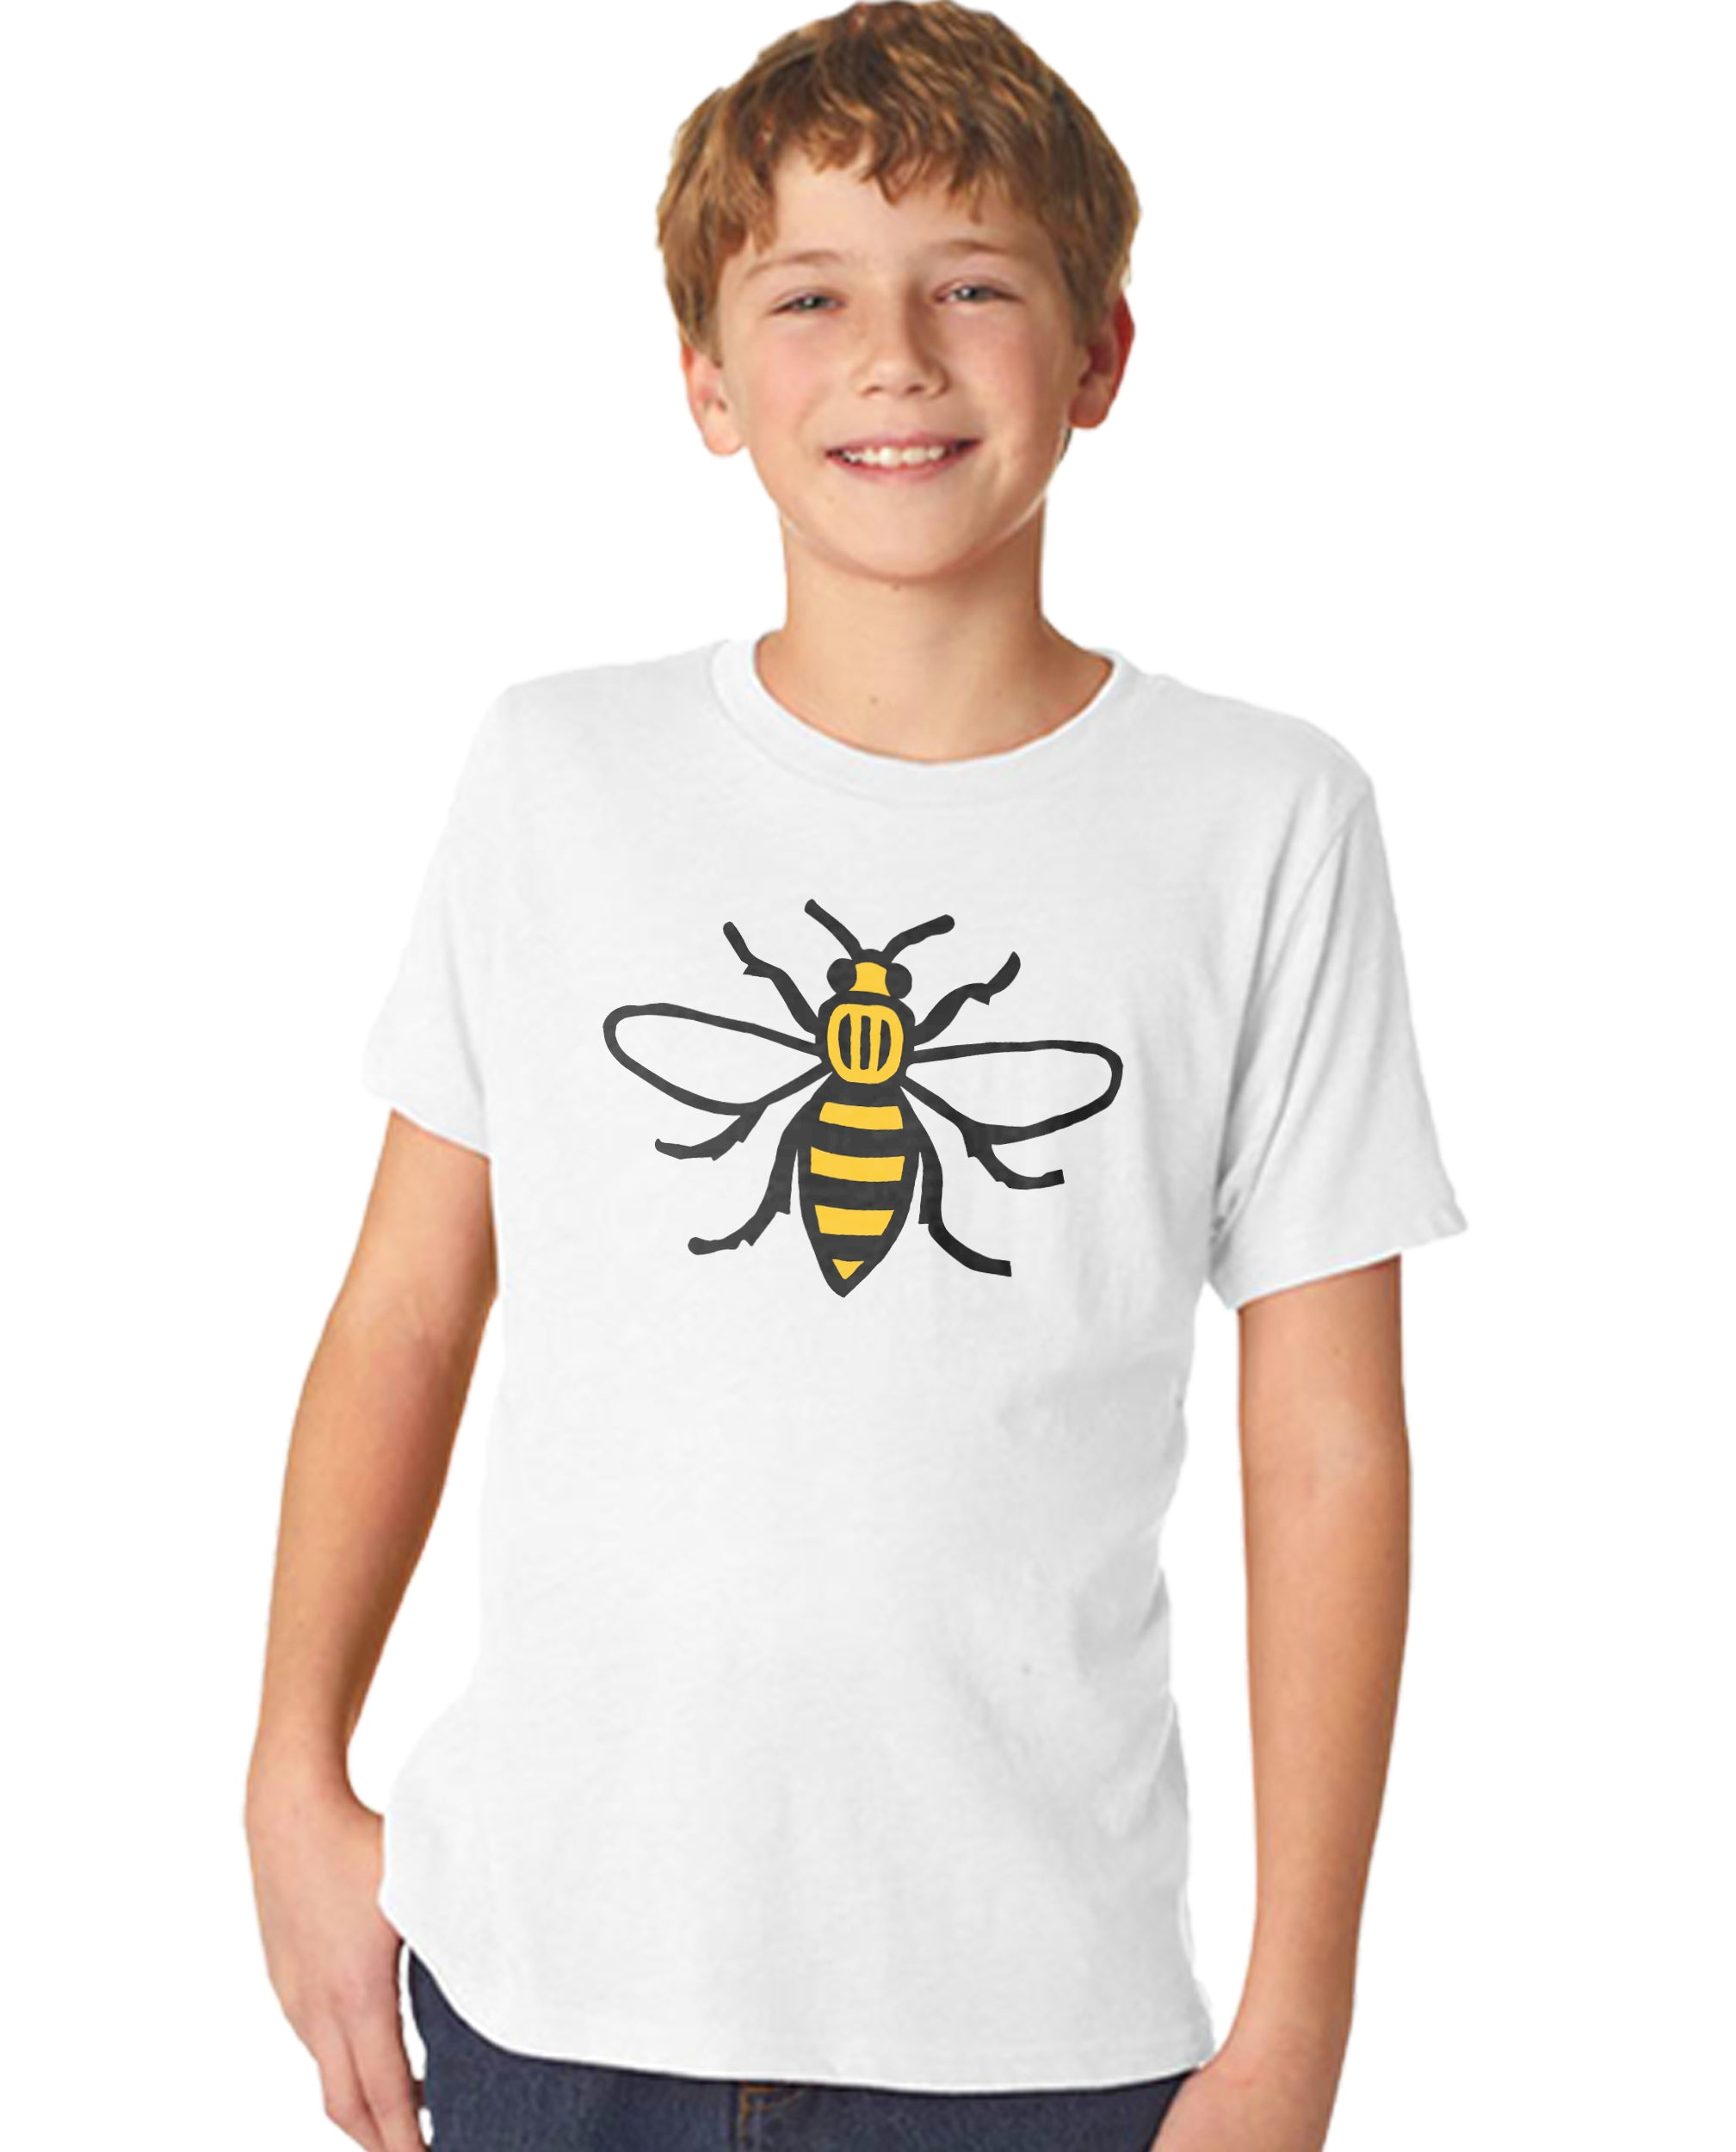 Honey Bee Boy's Premium Short Sleeve Crew